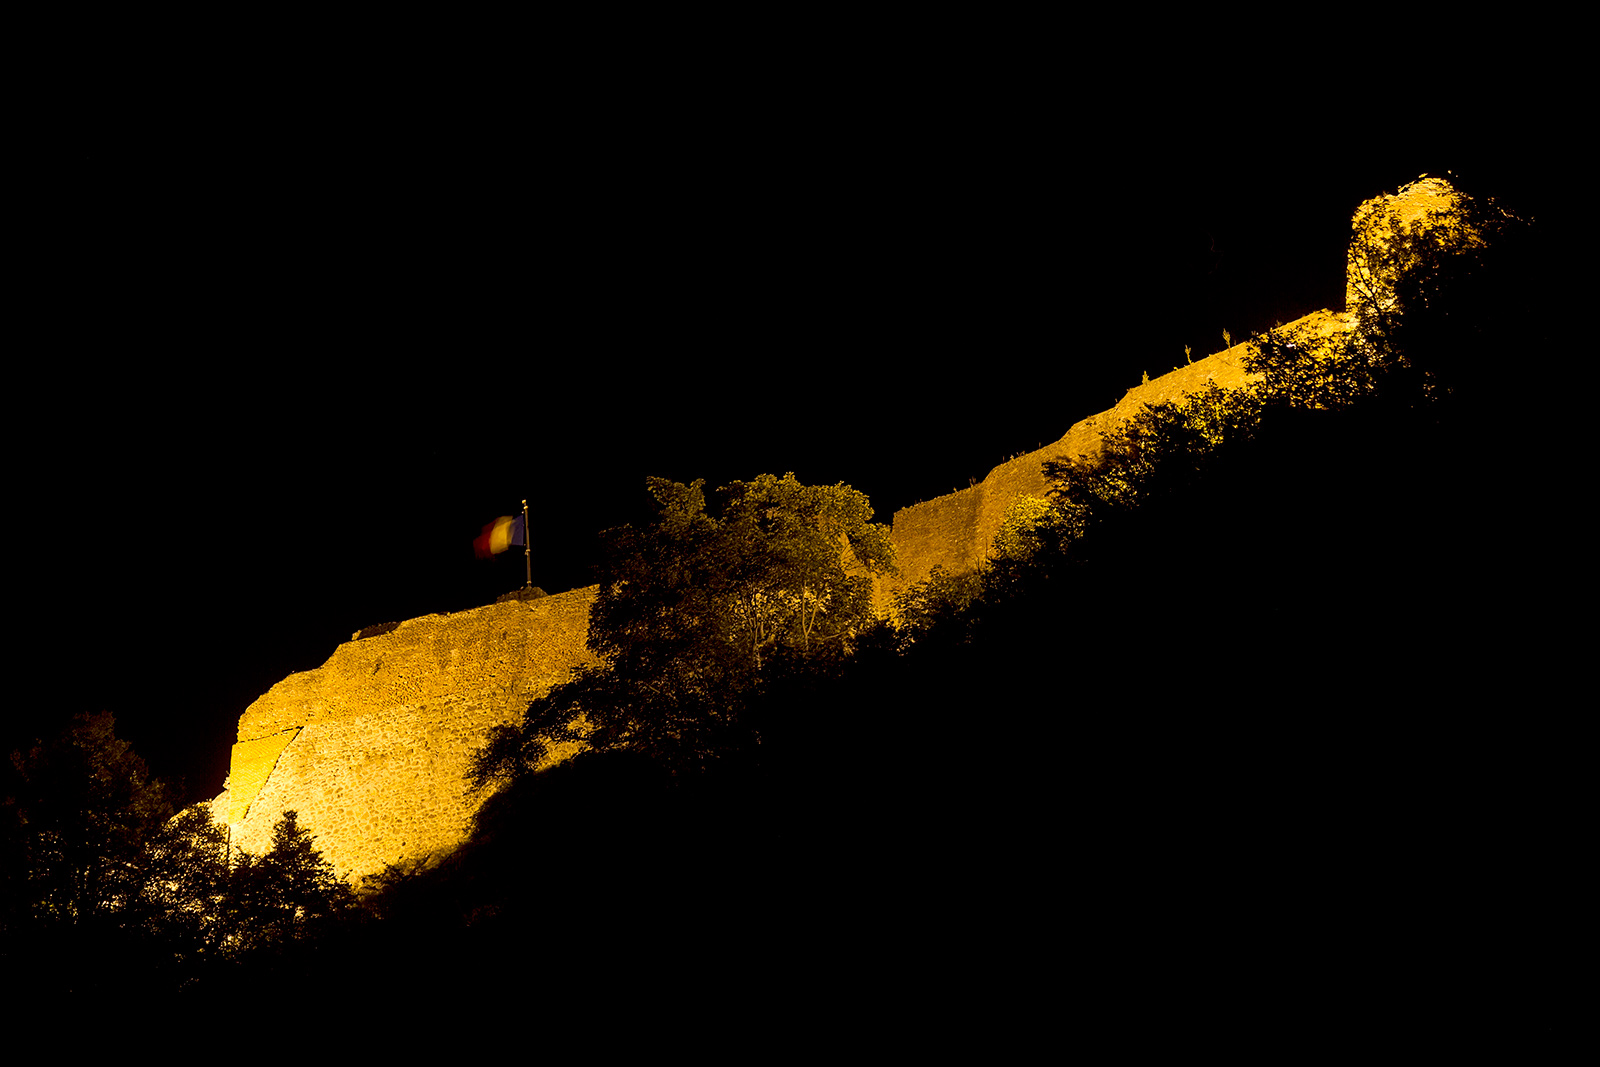 Cetatea Poienari - the Poienari Fortress at night from our camping place